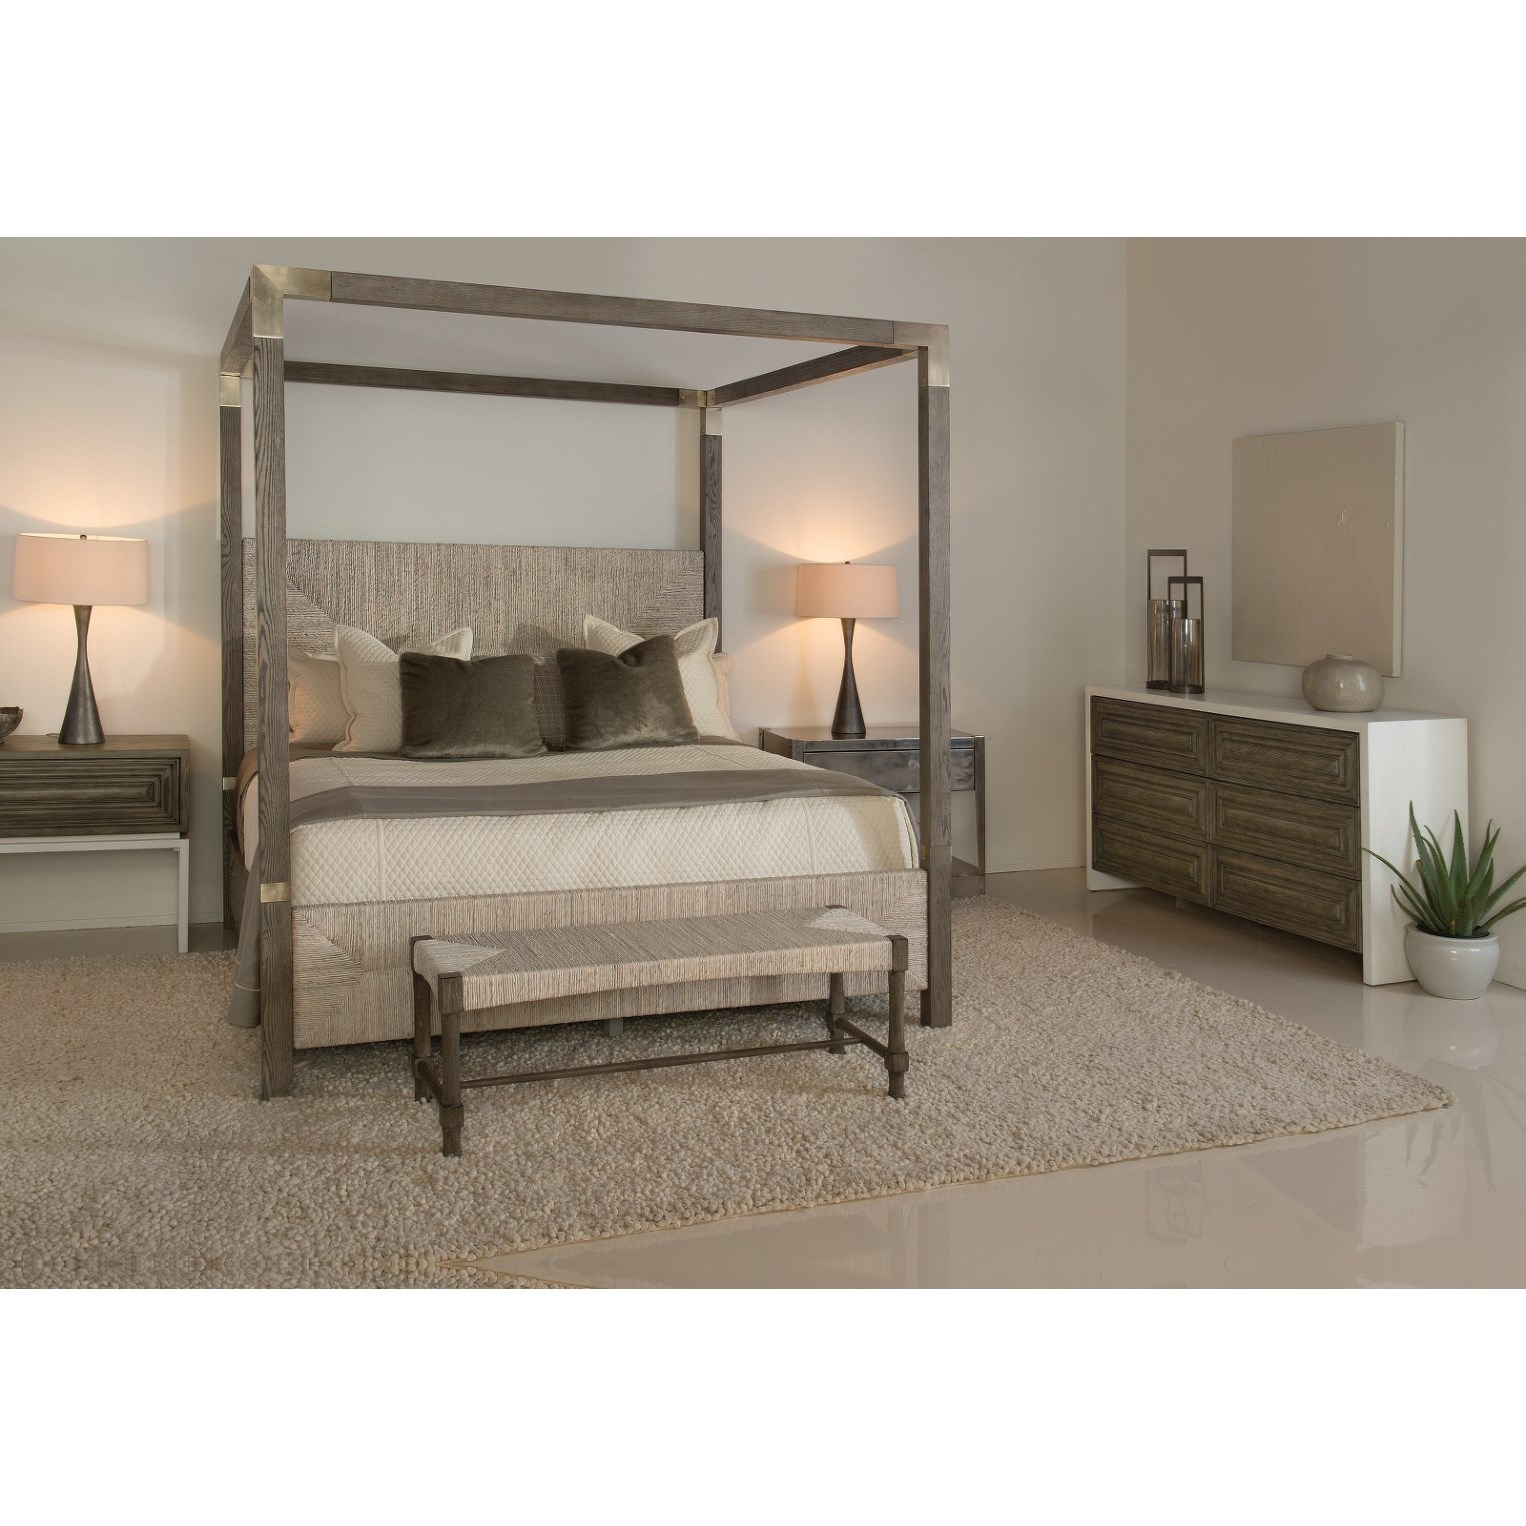 Bernhardt Palma California King Woven Abaca Canopy Bed